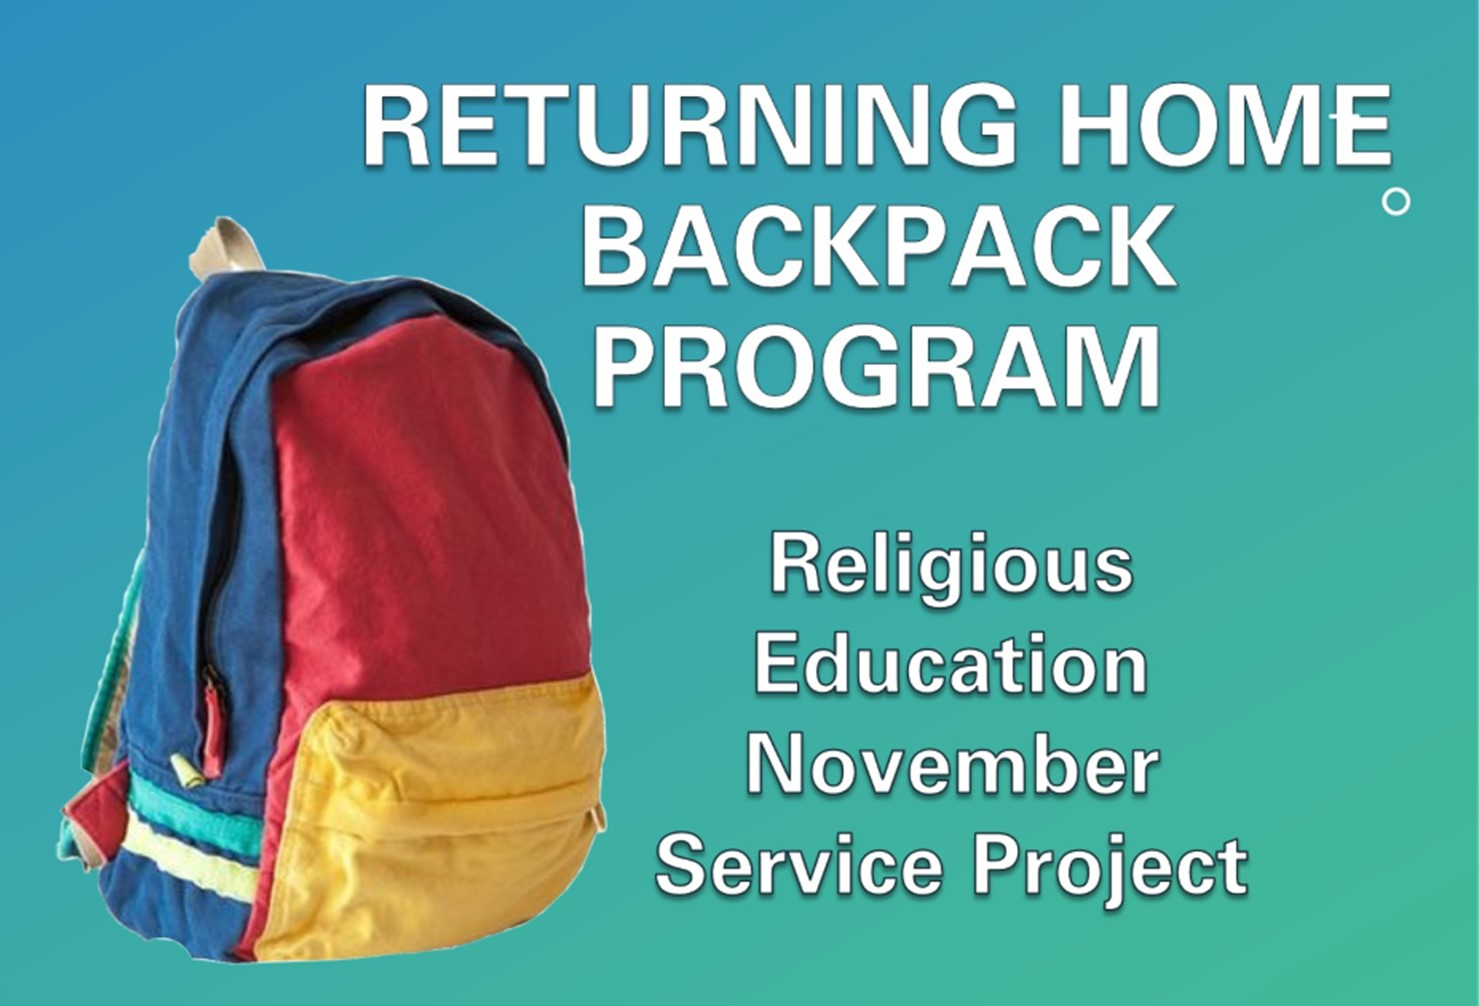 Returning Home BackPack R.E. November Service Project